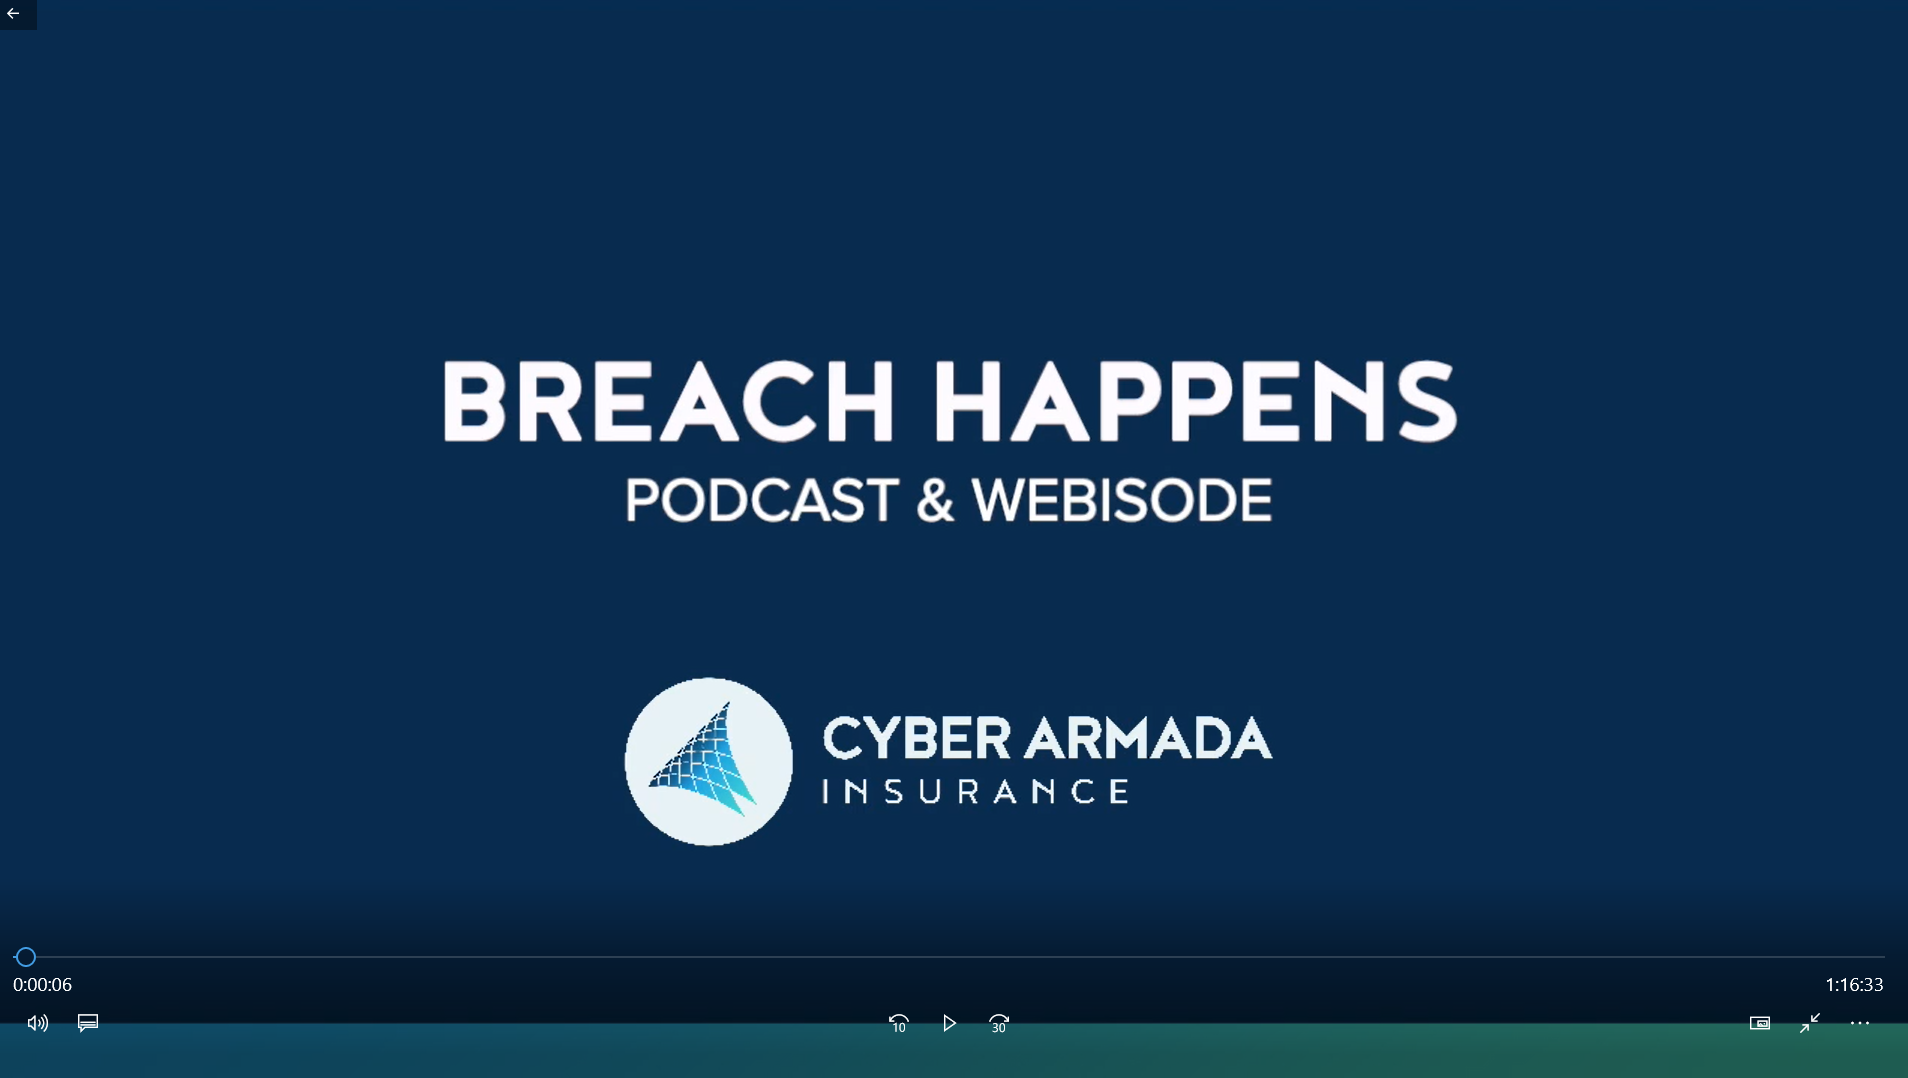 BREACH HAPPENS WEBISODE FINAL 2020